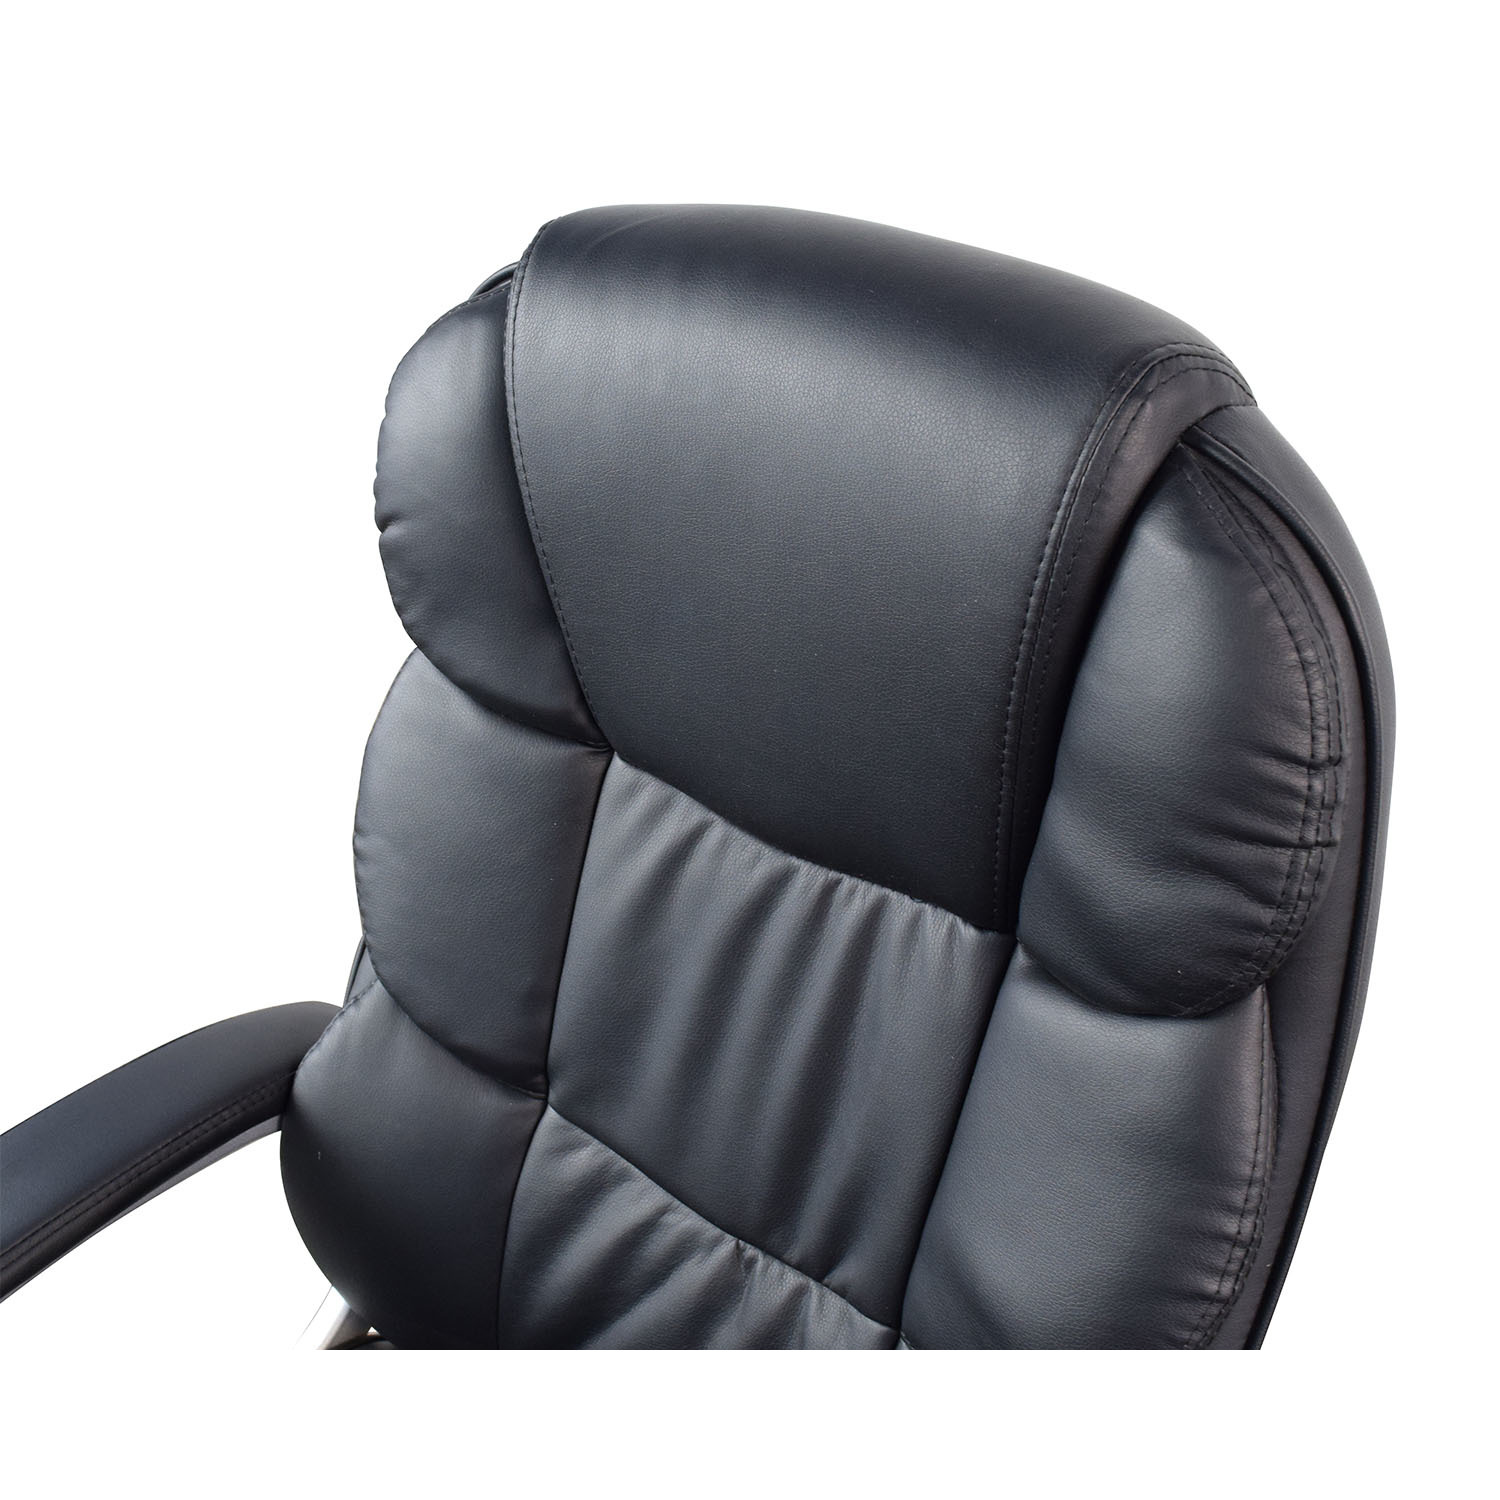 Black Leather Executive Office Chair dimensions